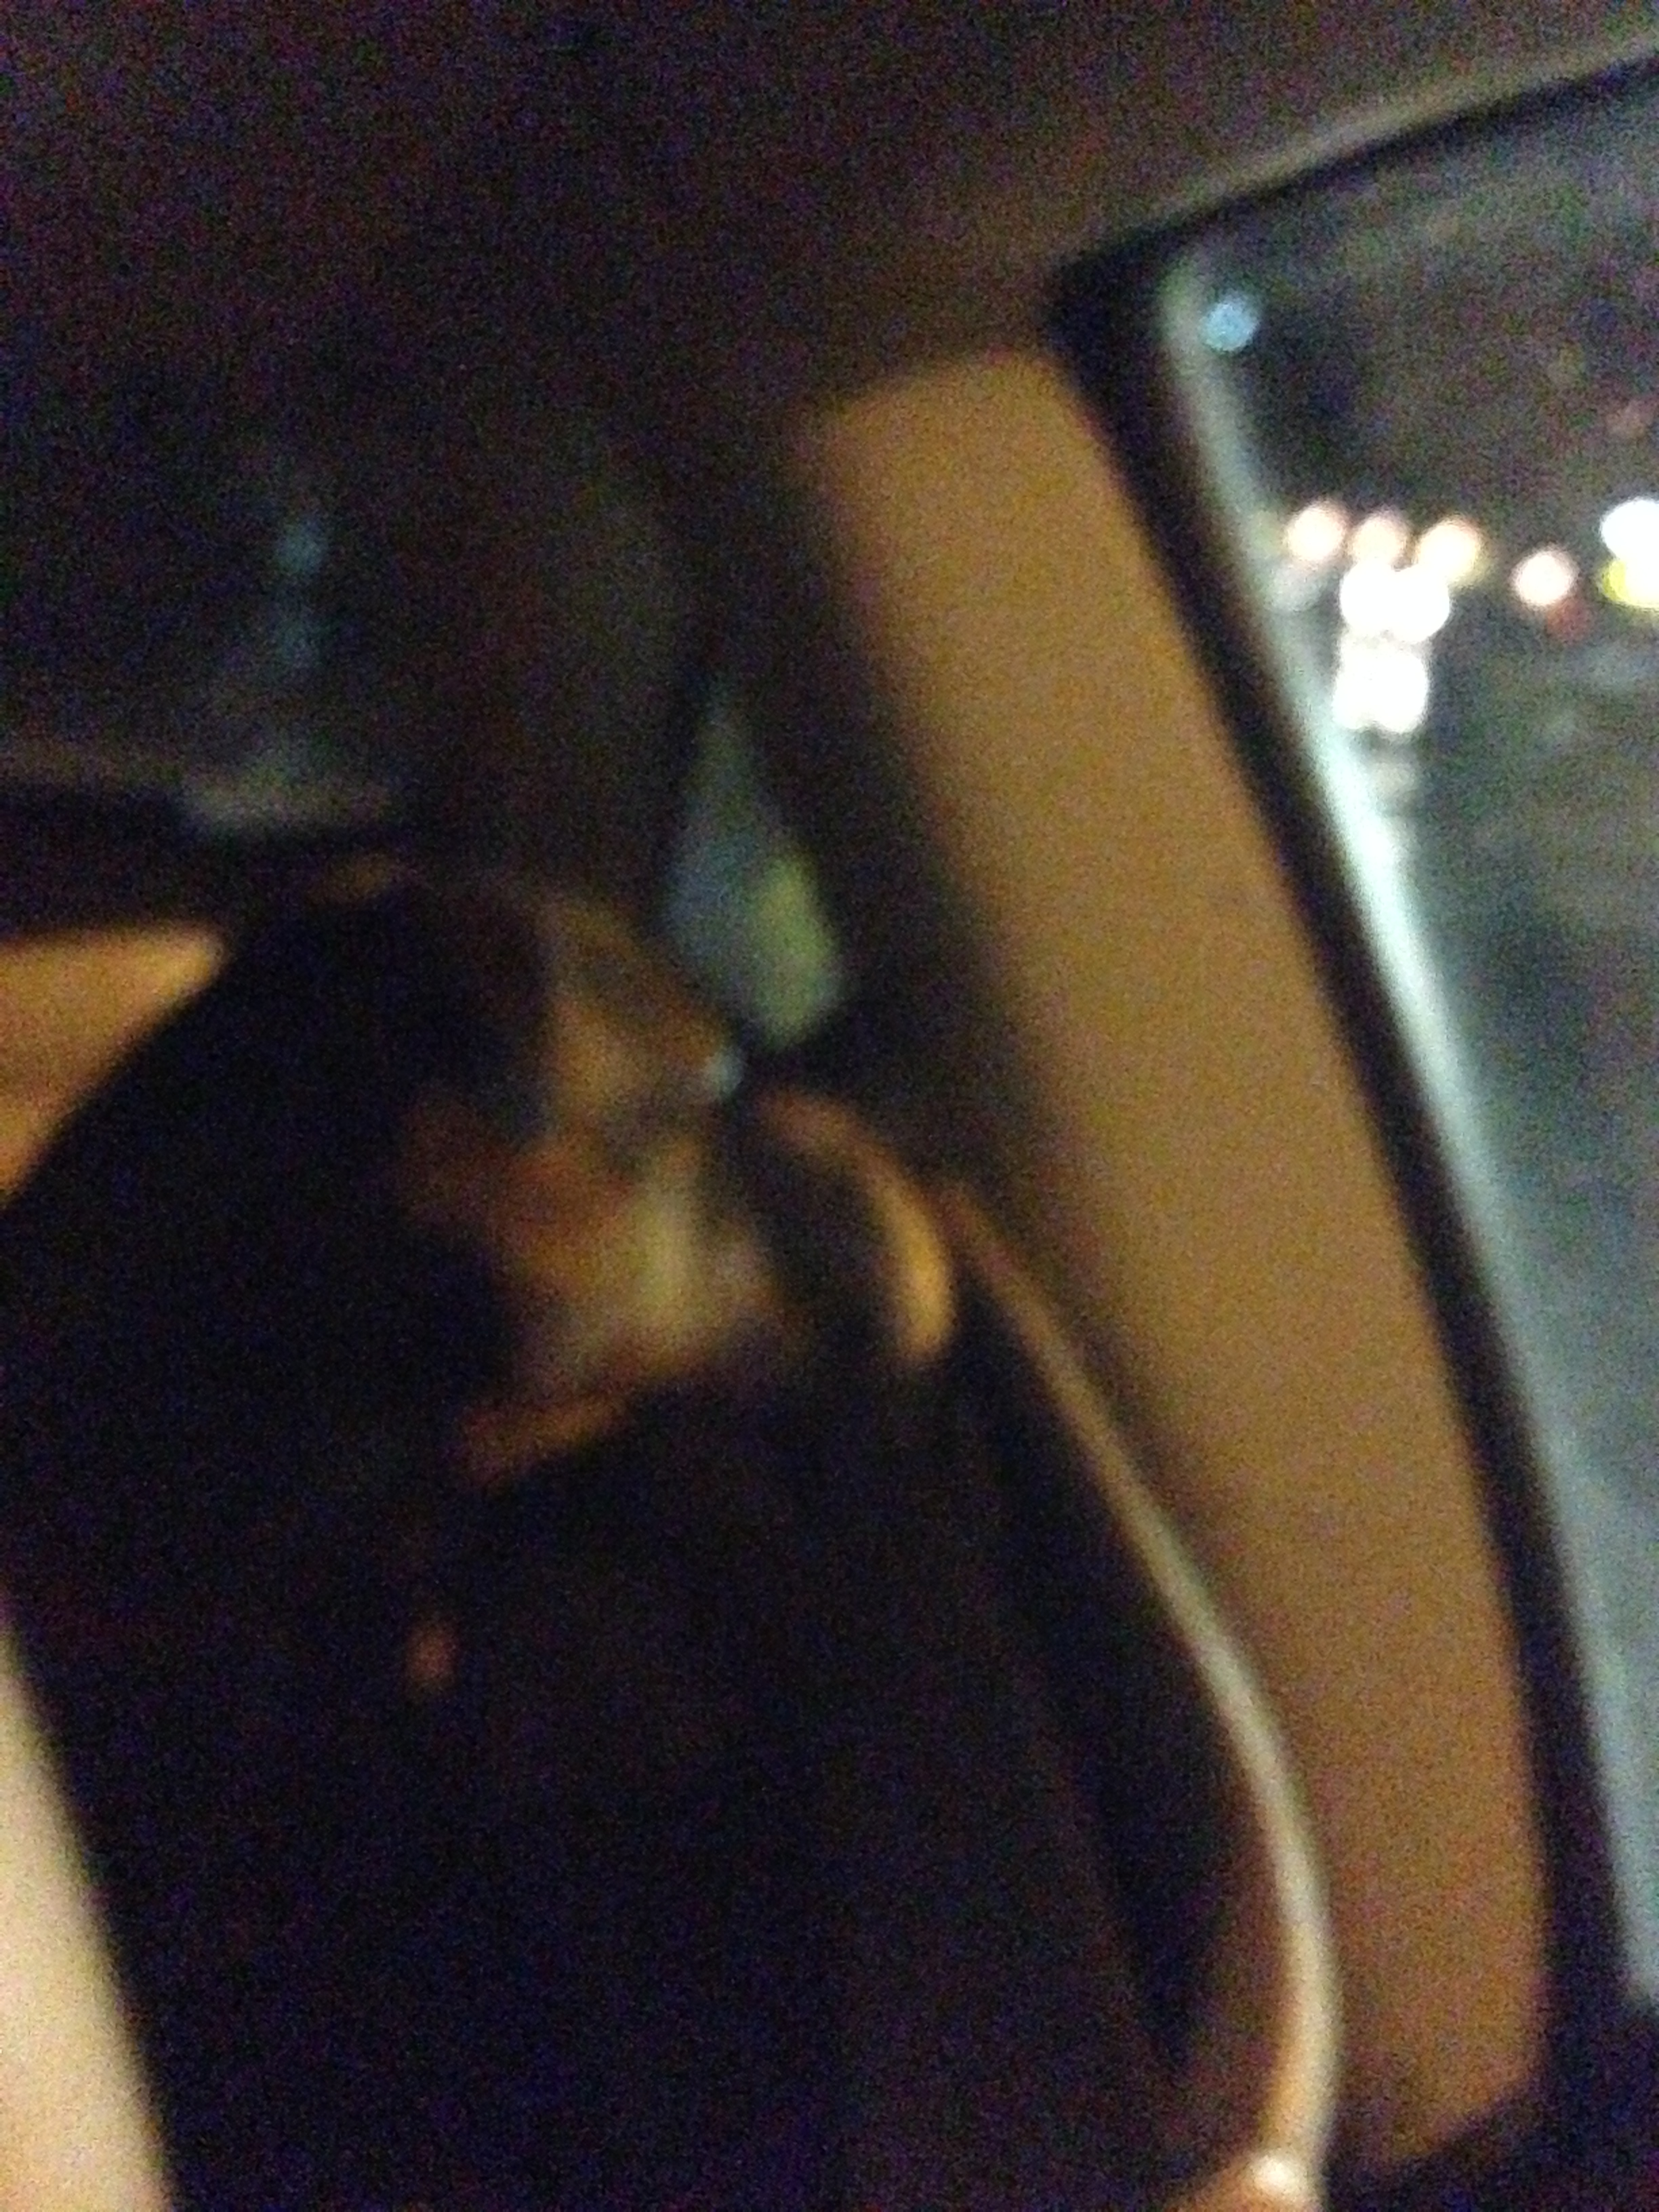 This was the man's dog that sat in my back seat for the 88 mile drive!